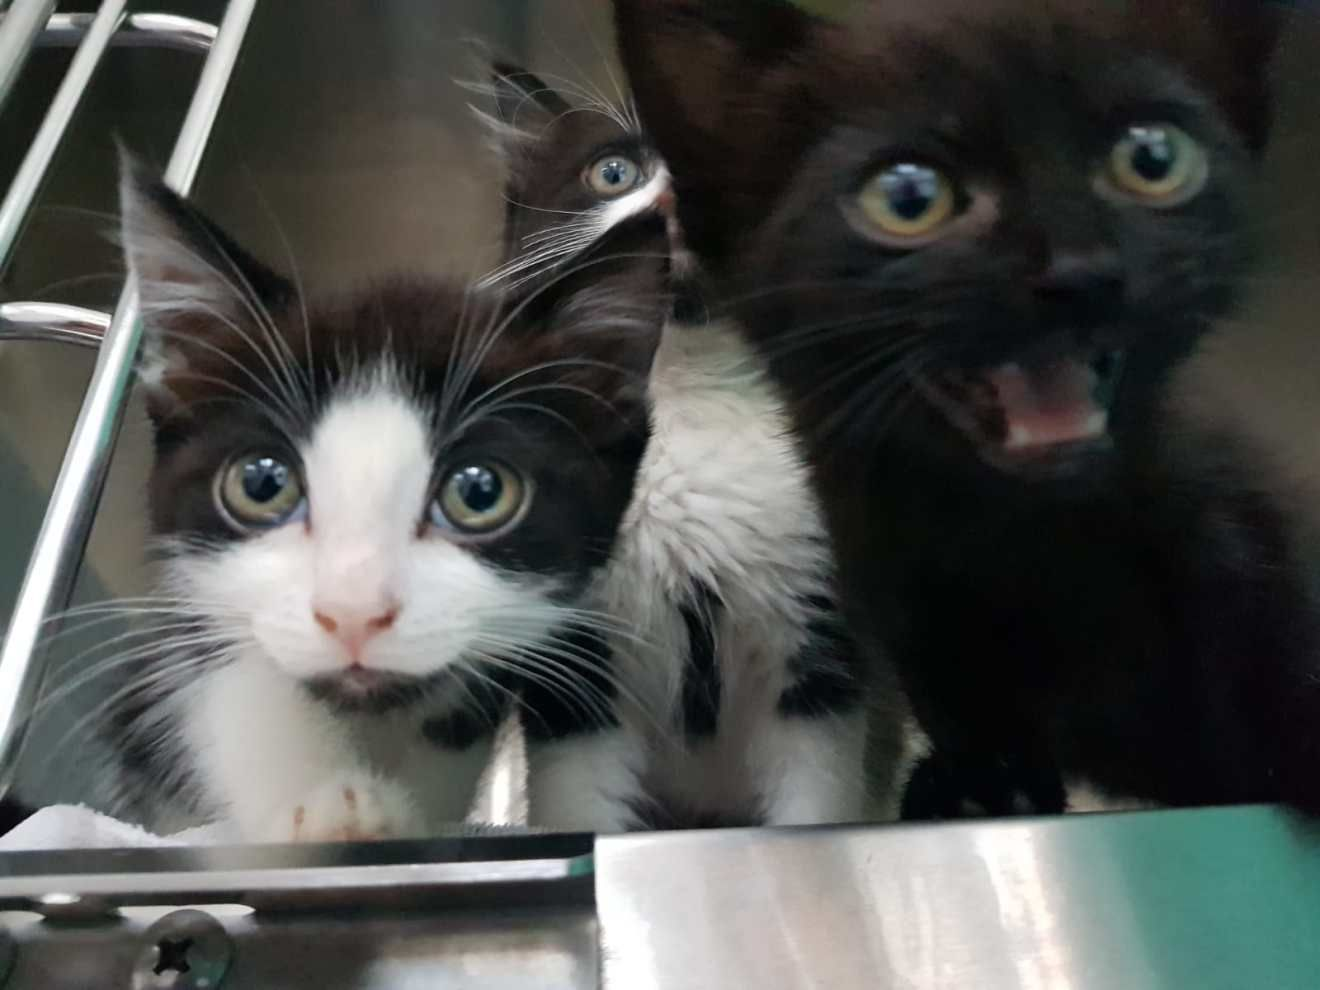 Eight Week Old Abandoned Kittens Had The Worst Flea Infestation Mayhew Vets Have Ever Seen Cat Has Fleas Kittens Sick Cat